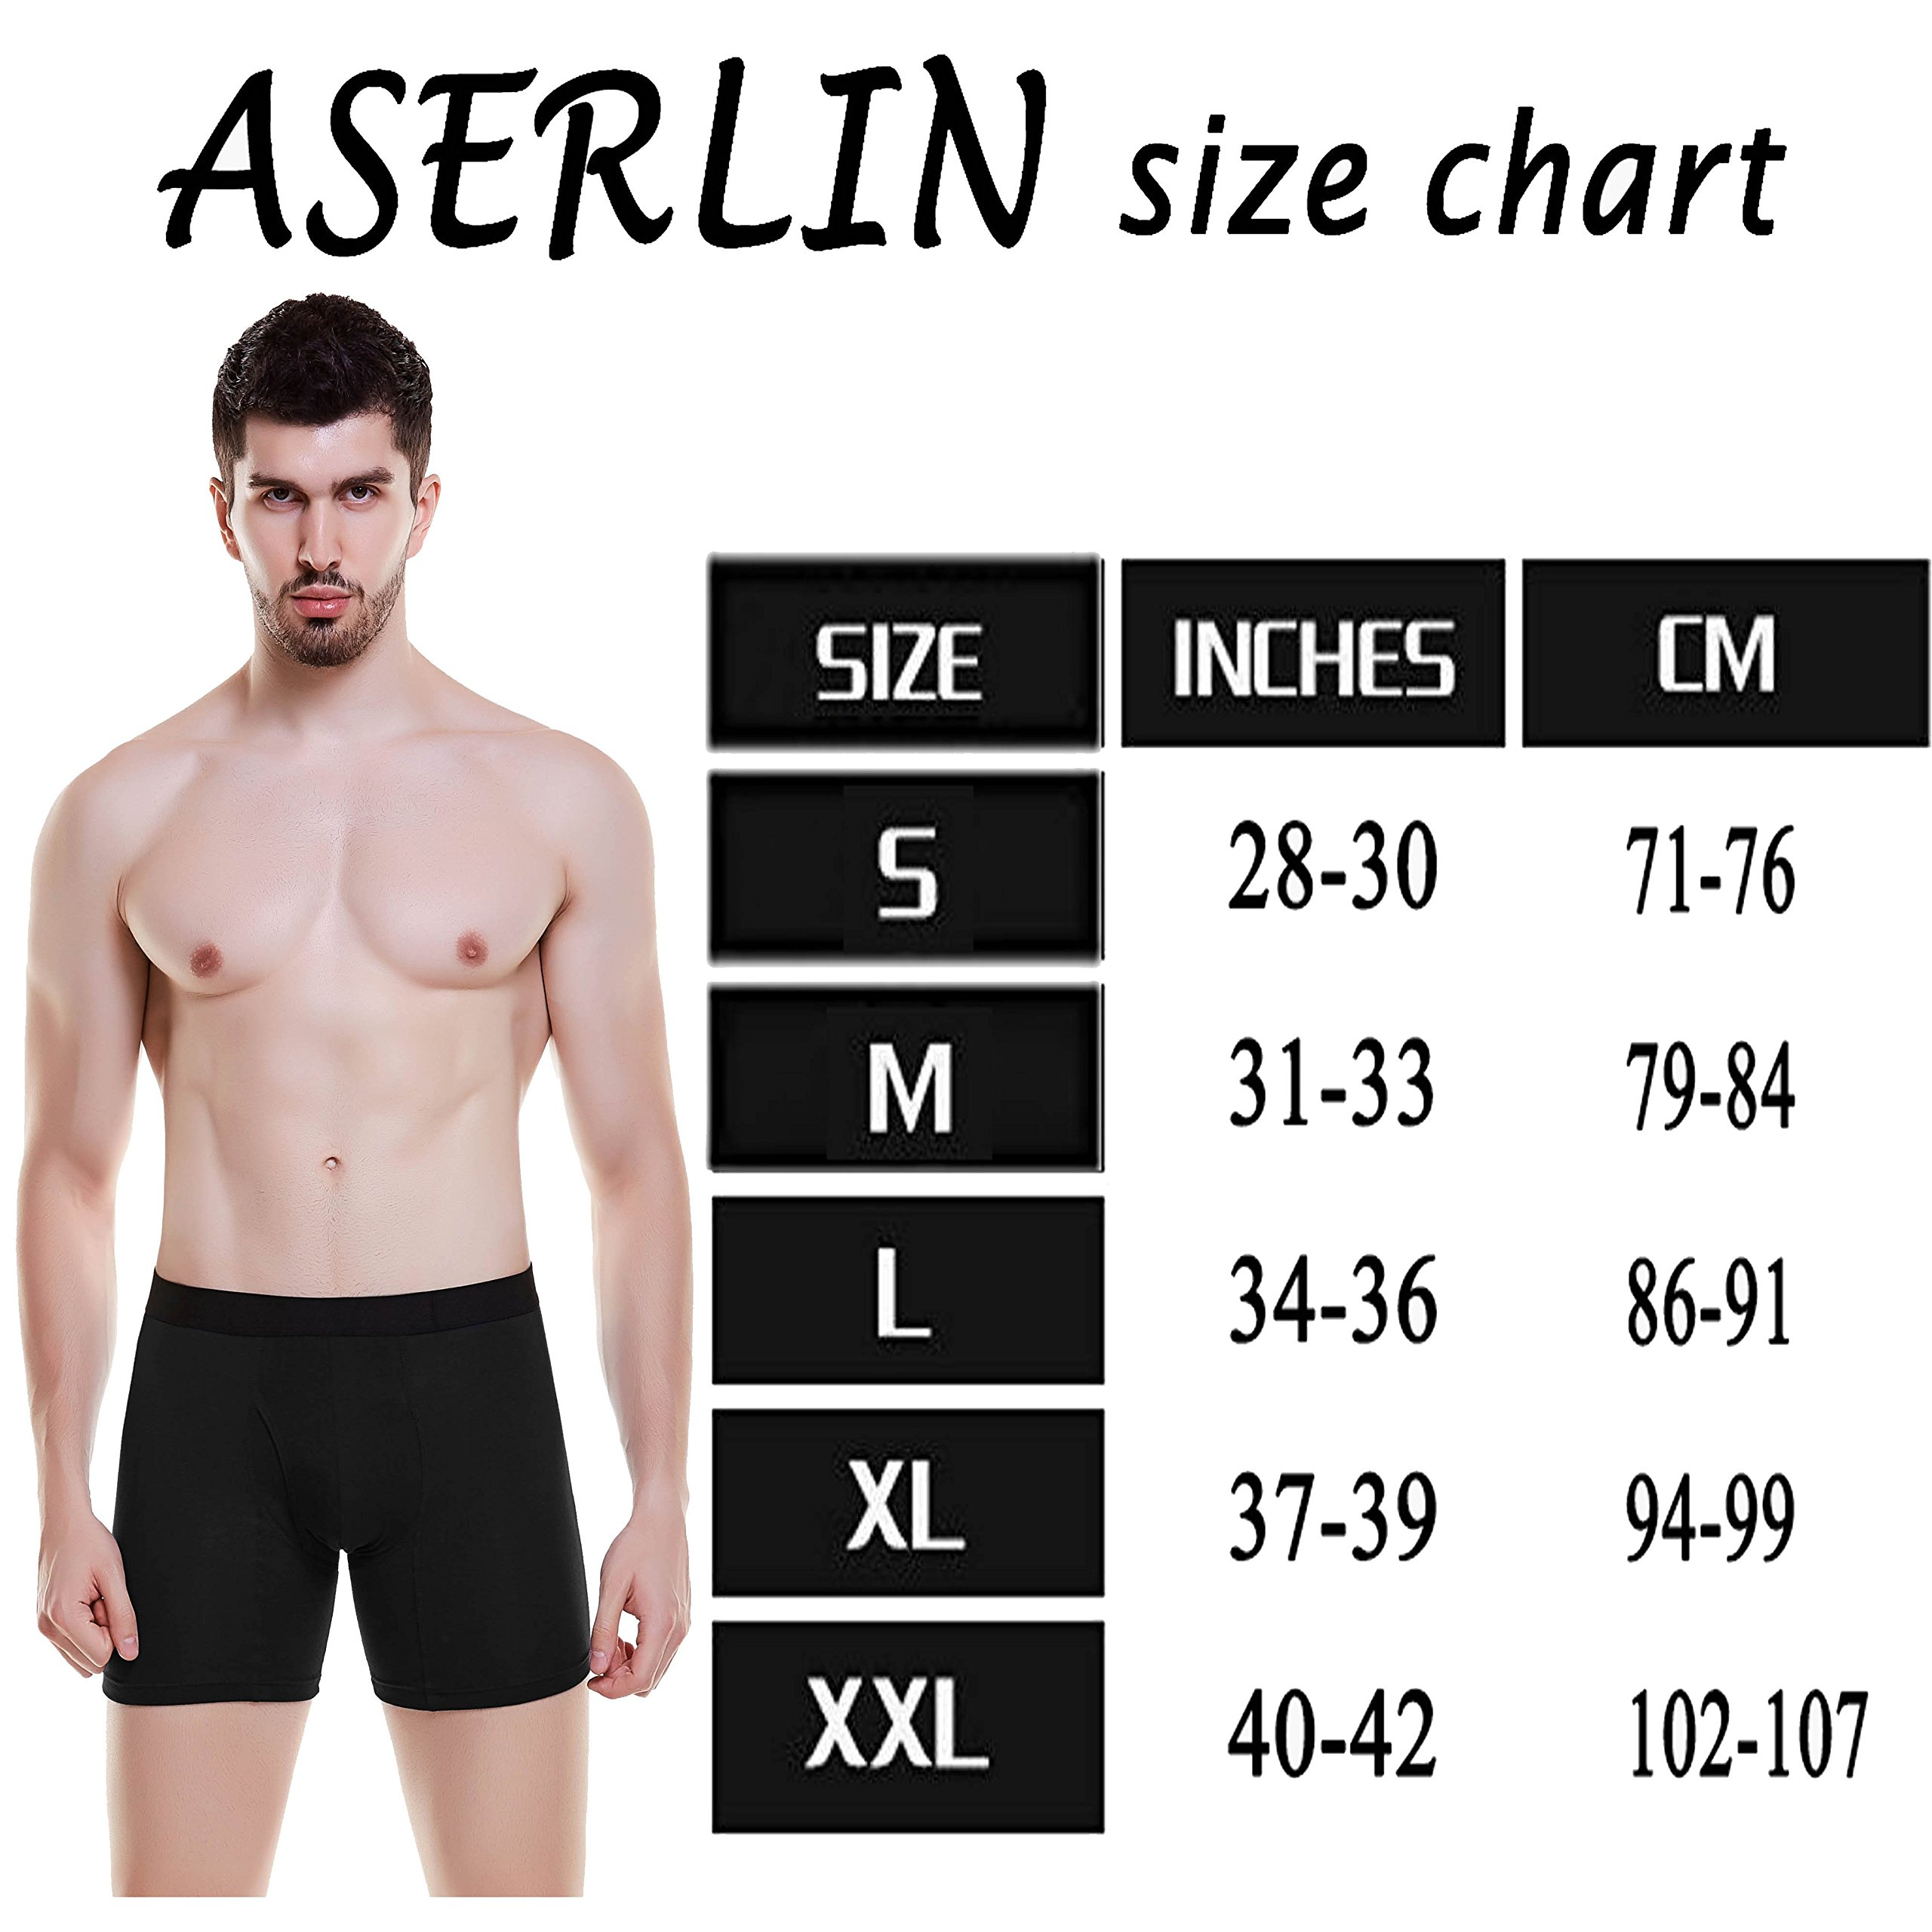 Aserlin Men\'s 2 Pack Regular Legs Underwear Boxer Briefs Cotton Mens Boxer Briefs No Ride-up Underwear Men Pack-A-1B1G-Fly-M